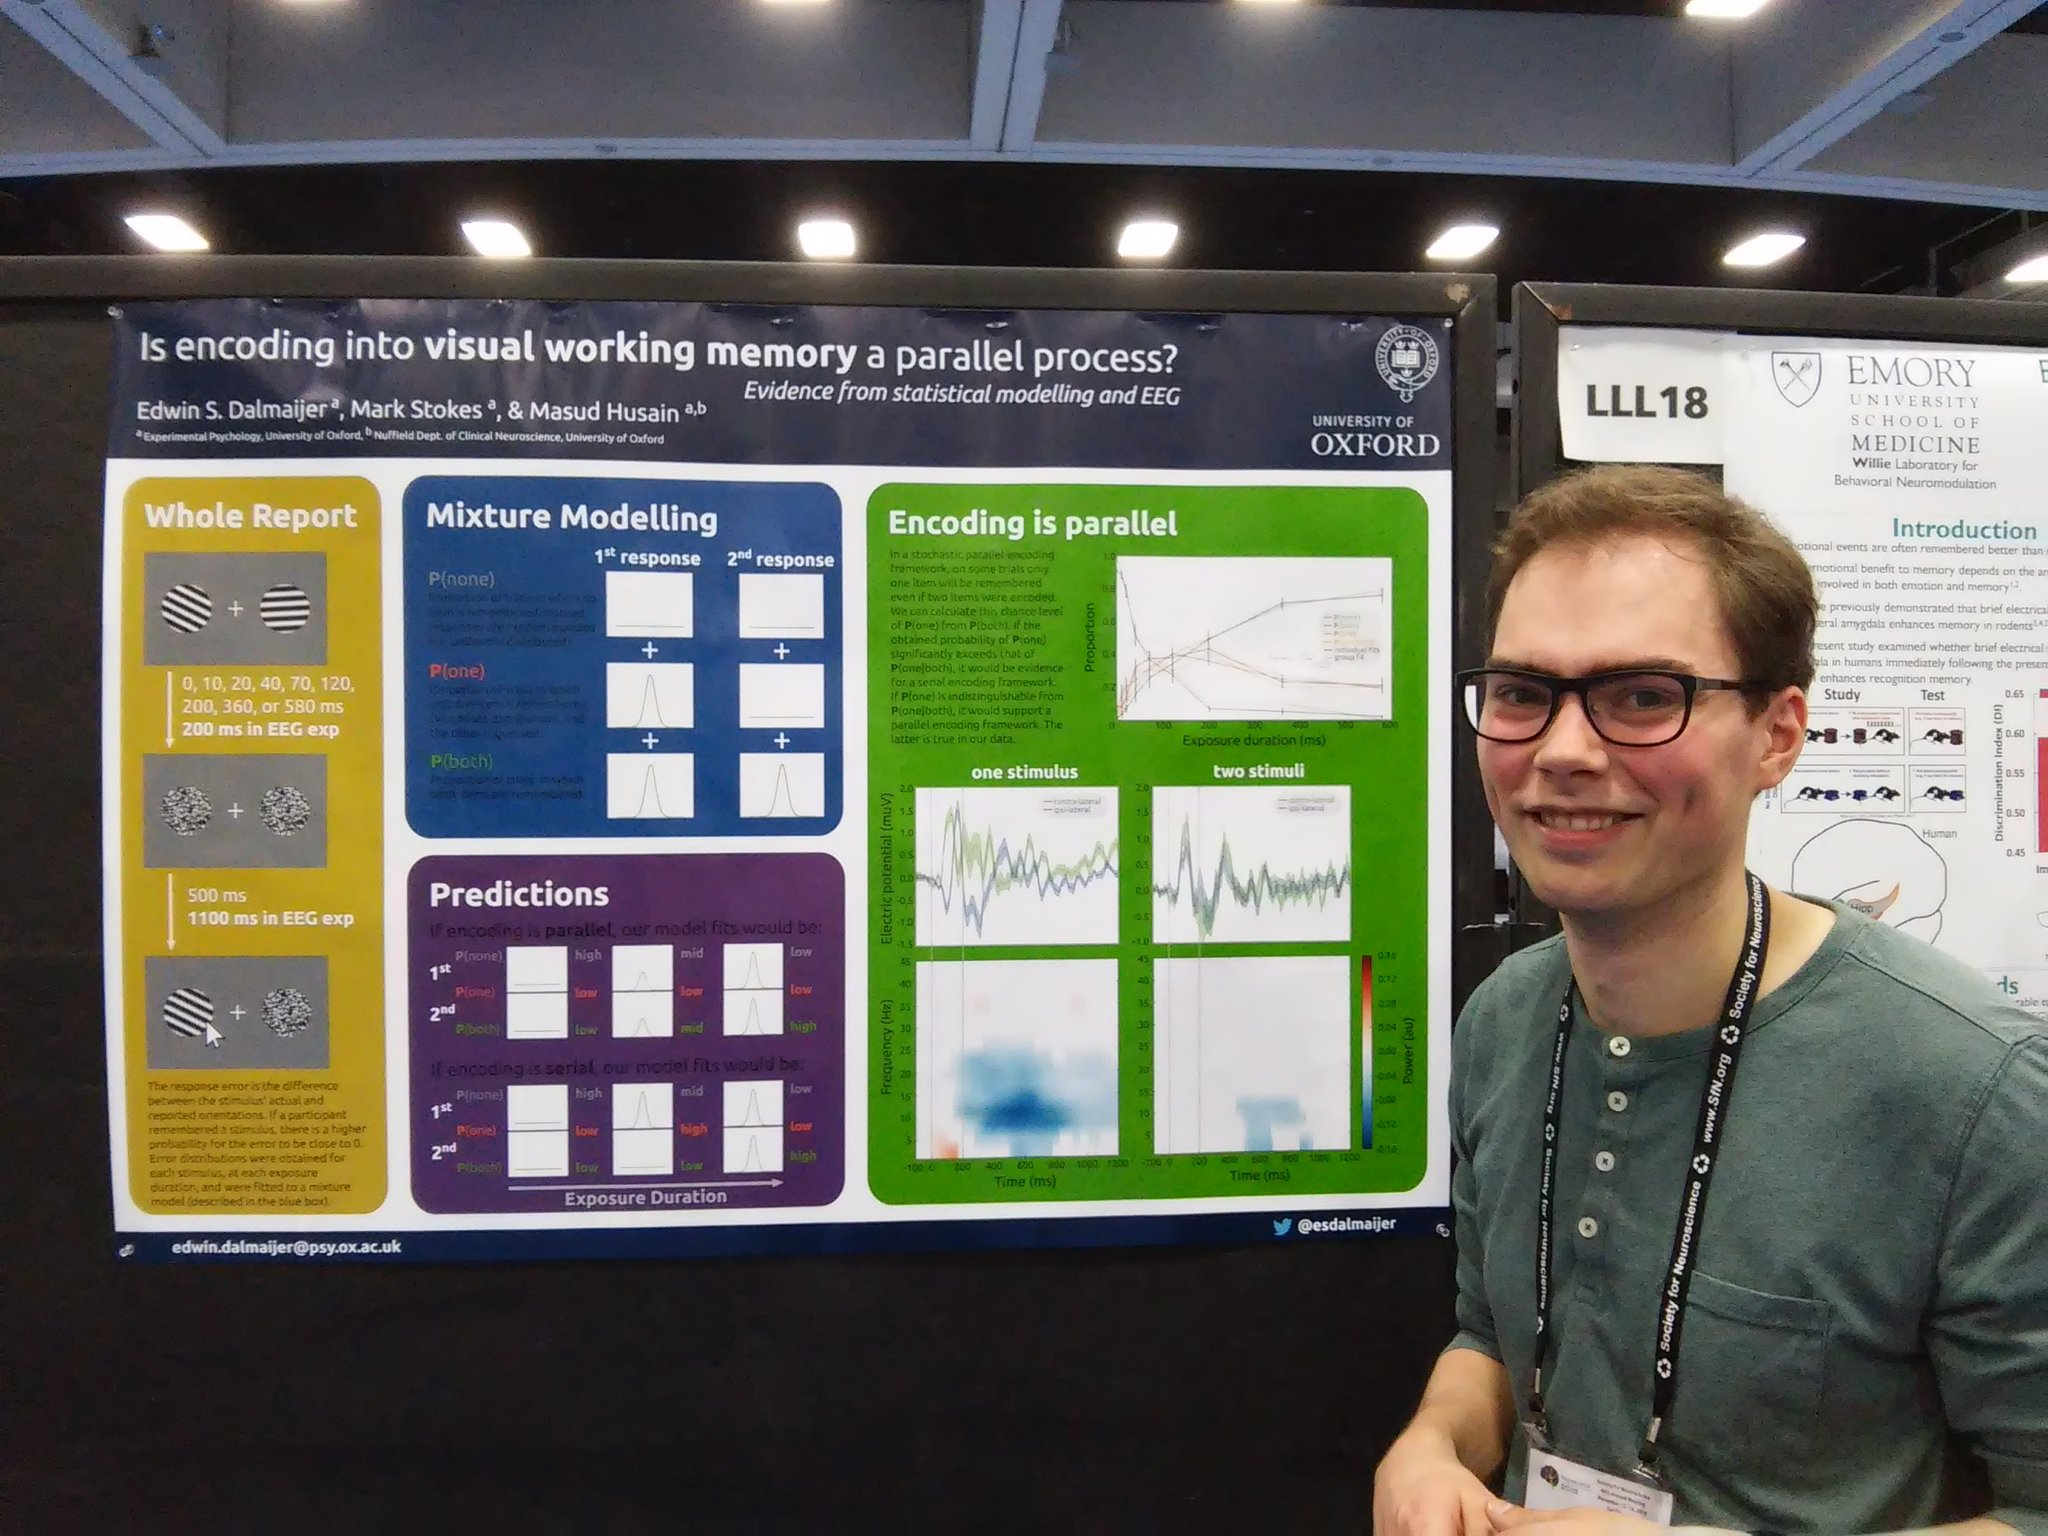 Poster LLL19 @esdalmaijer uses statistical models & EEG to distinguish parallel from sequential encoding in WM #sfn16 #plos https://t.co/fIhG192WtD